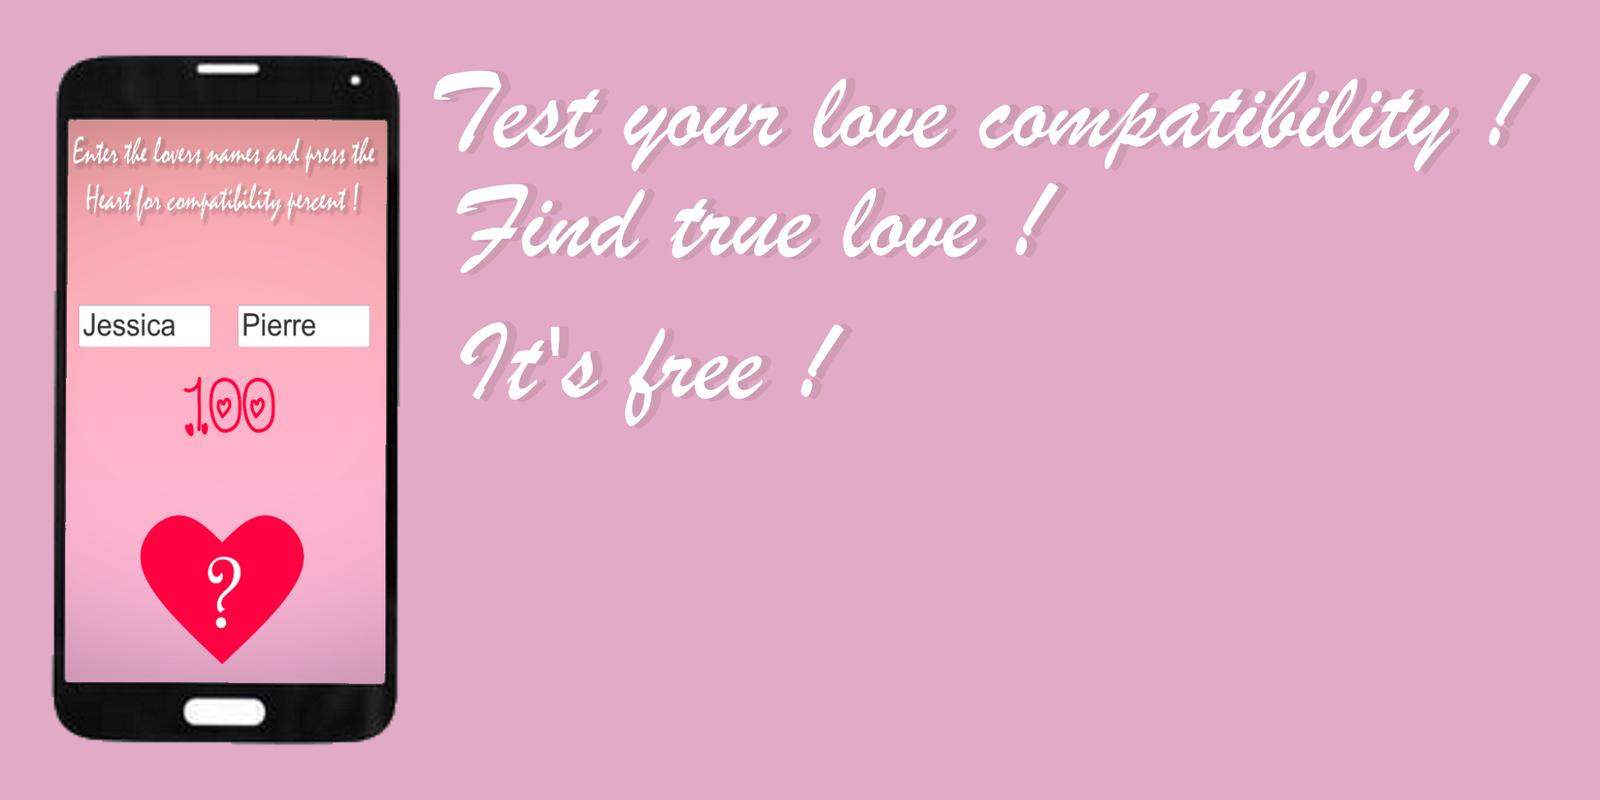 test your love 3